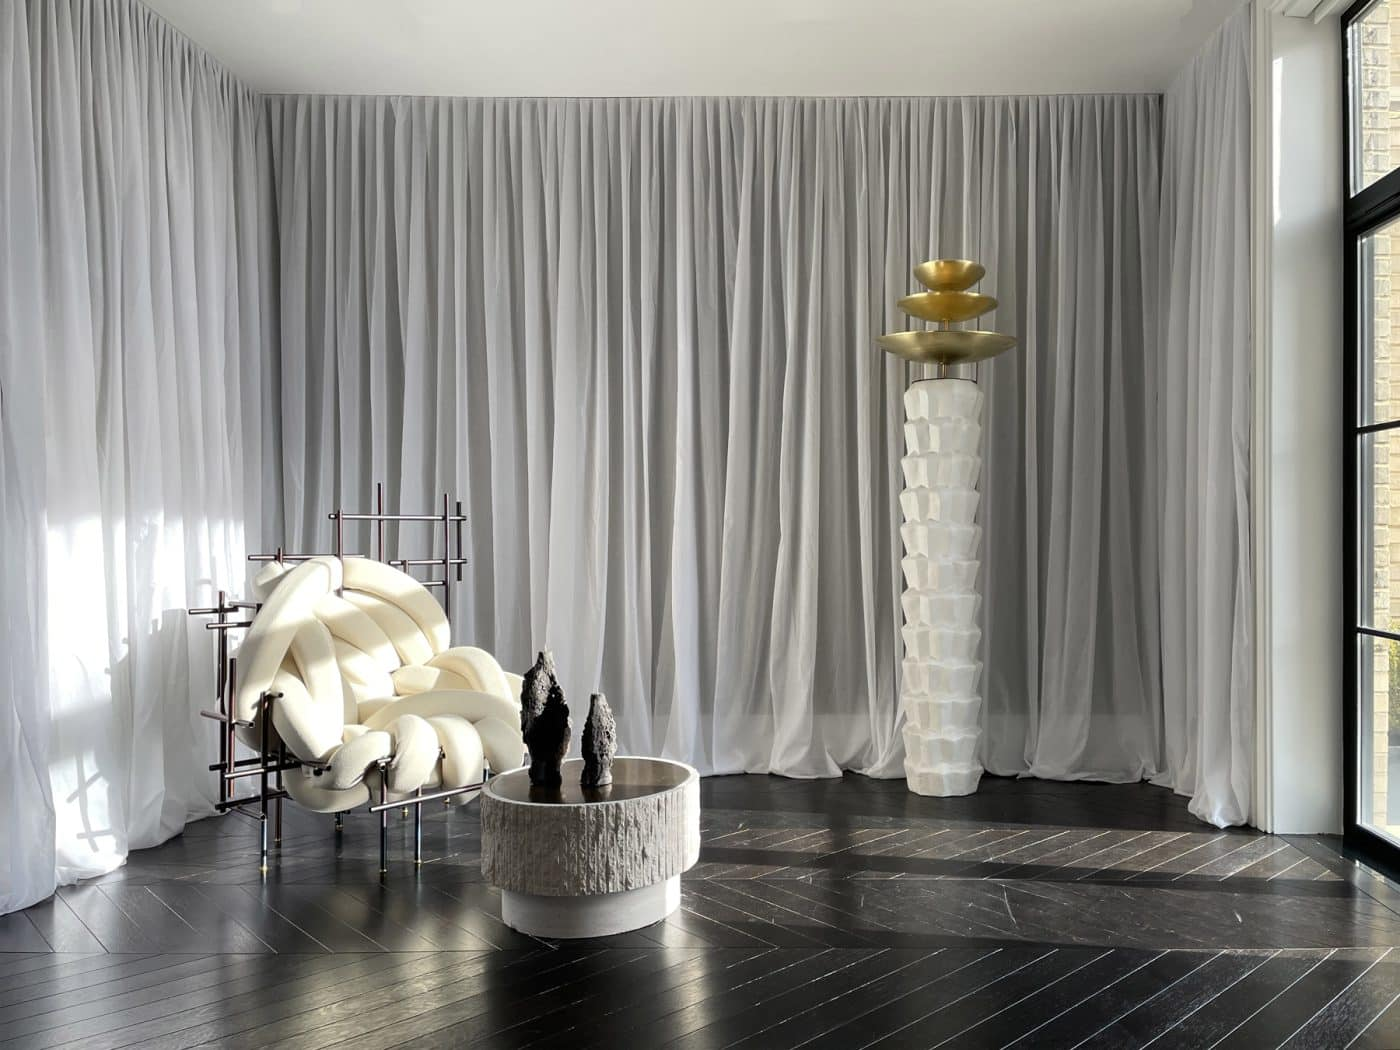 The gallery in Galerie Philia's staged apartment in New York's Walker Tower